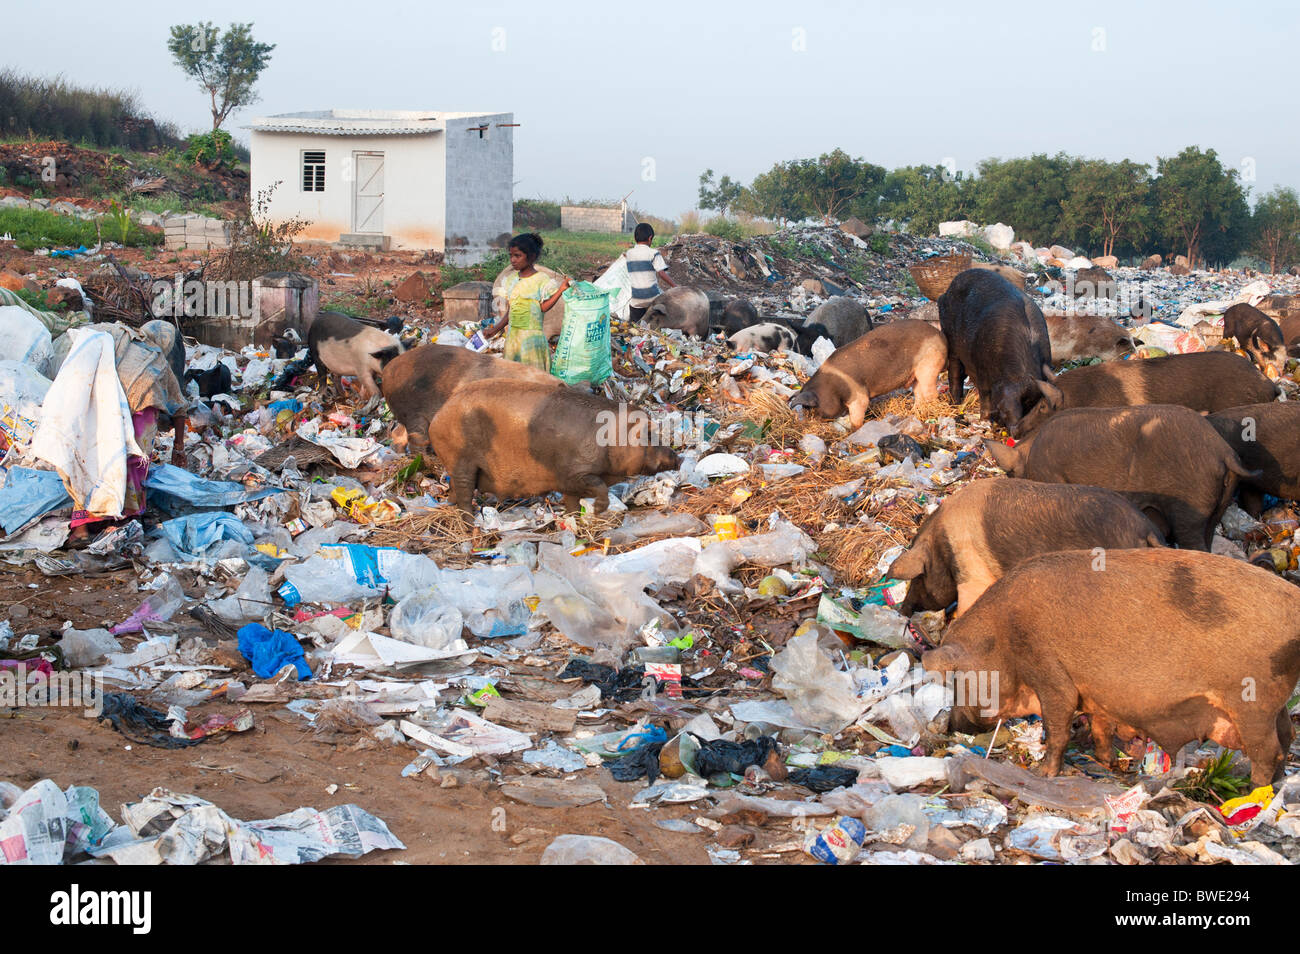 Poor Indian children collecting pickings from a rubbish tip surrounded by pigs. Andhra Pradesh, India Stock Photo